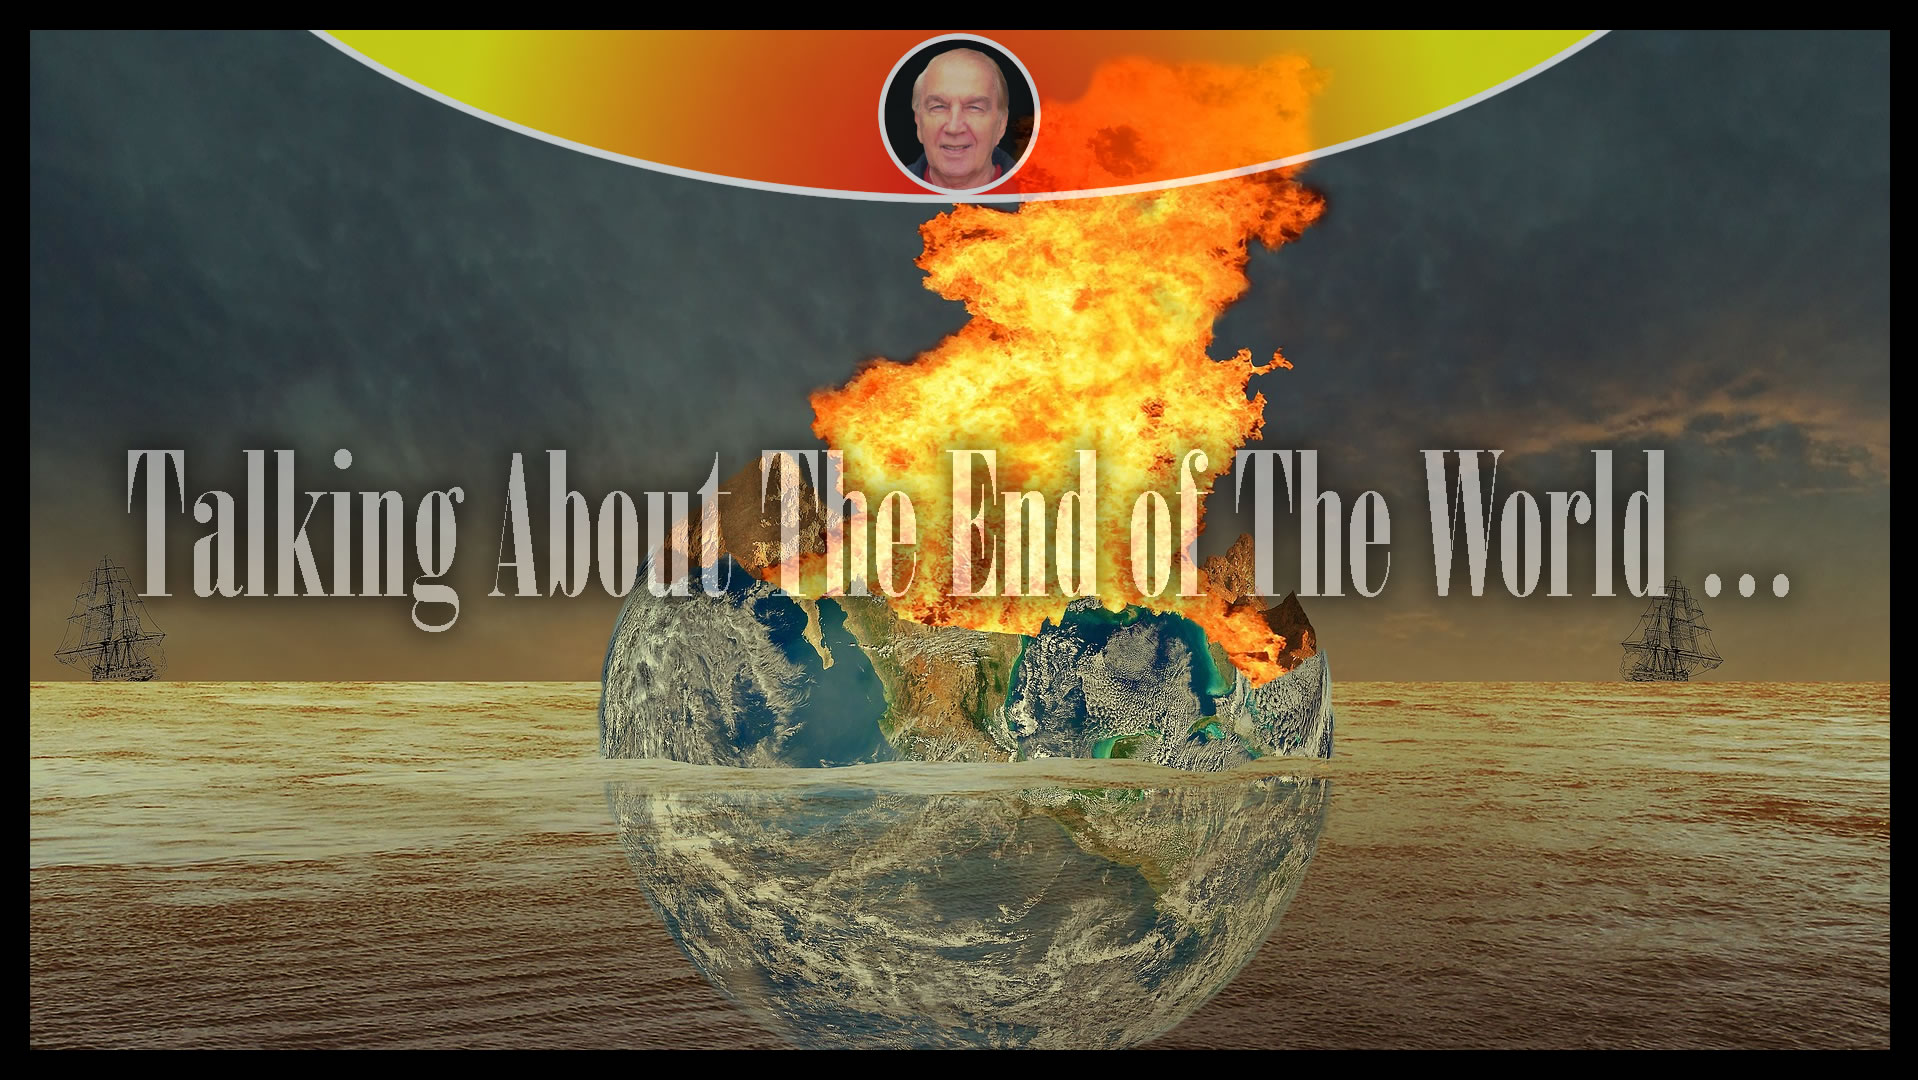 Talking About The End of The World ...